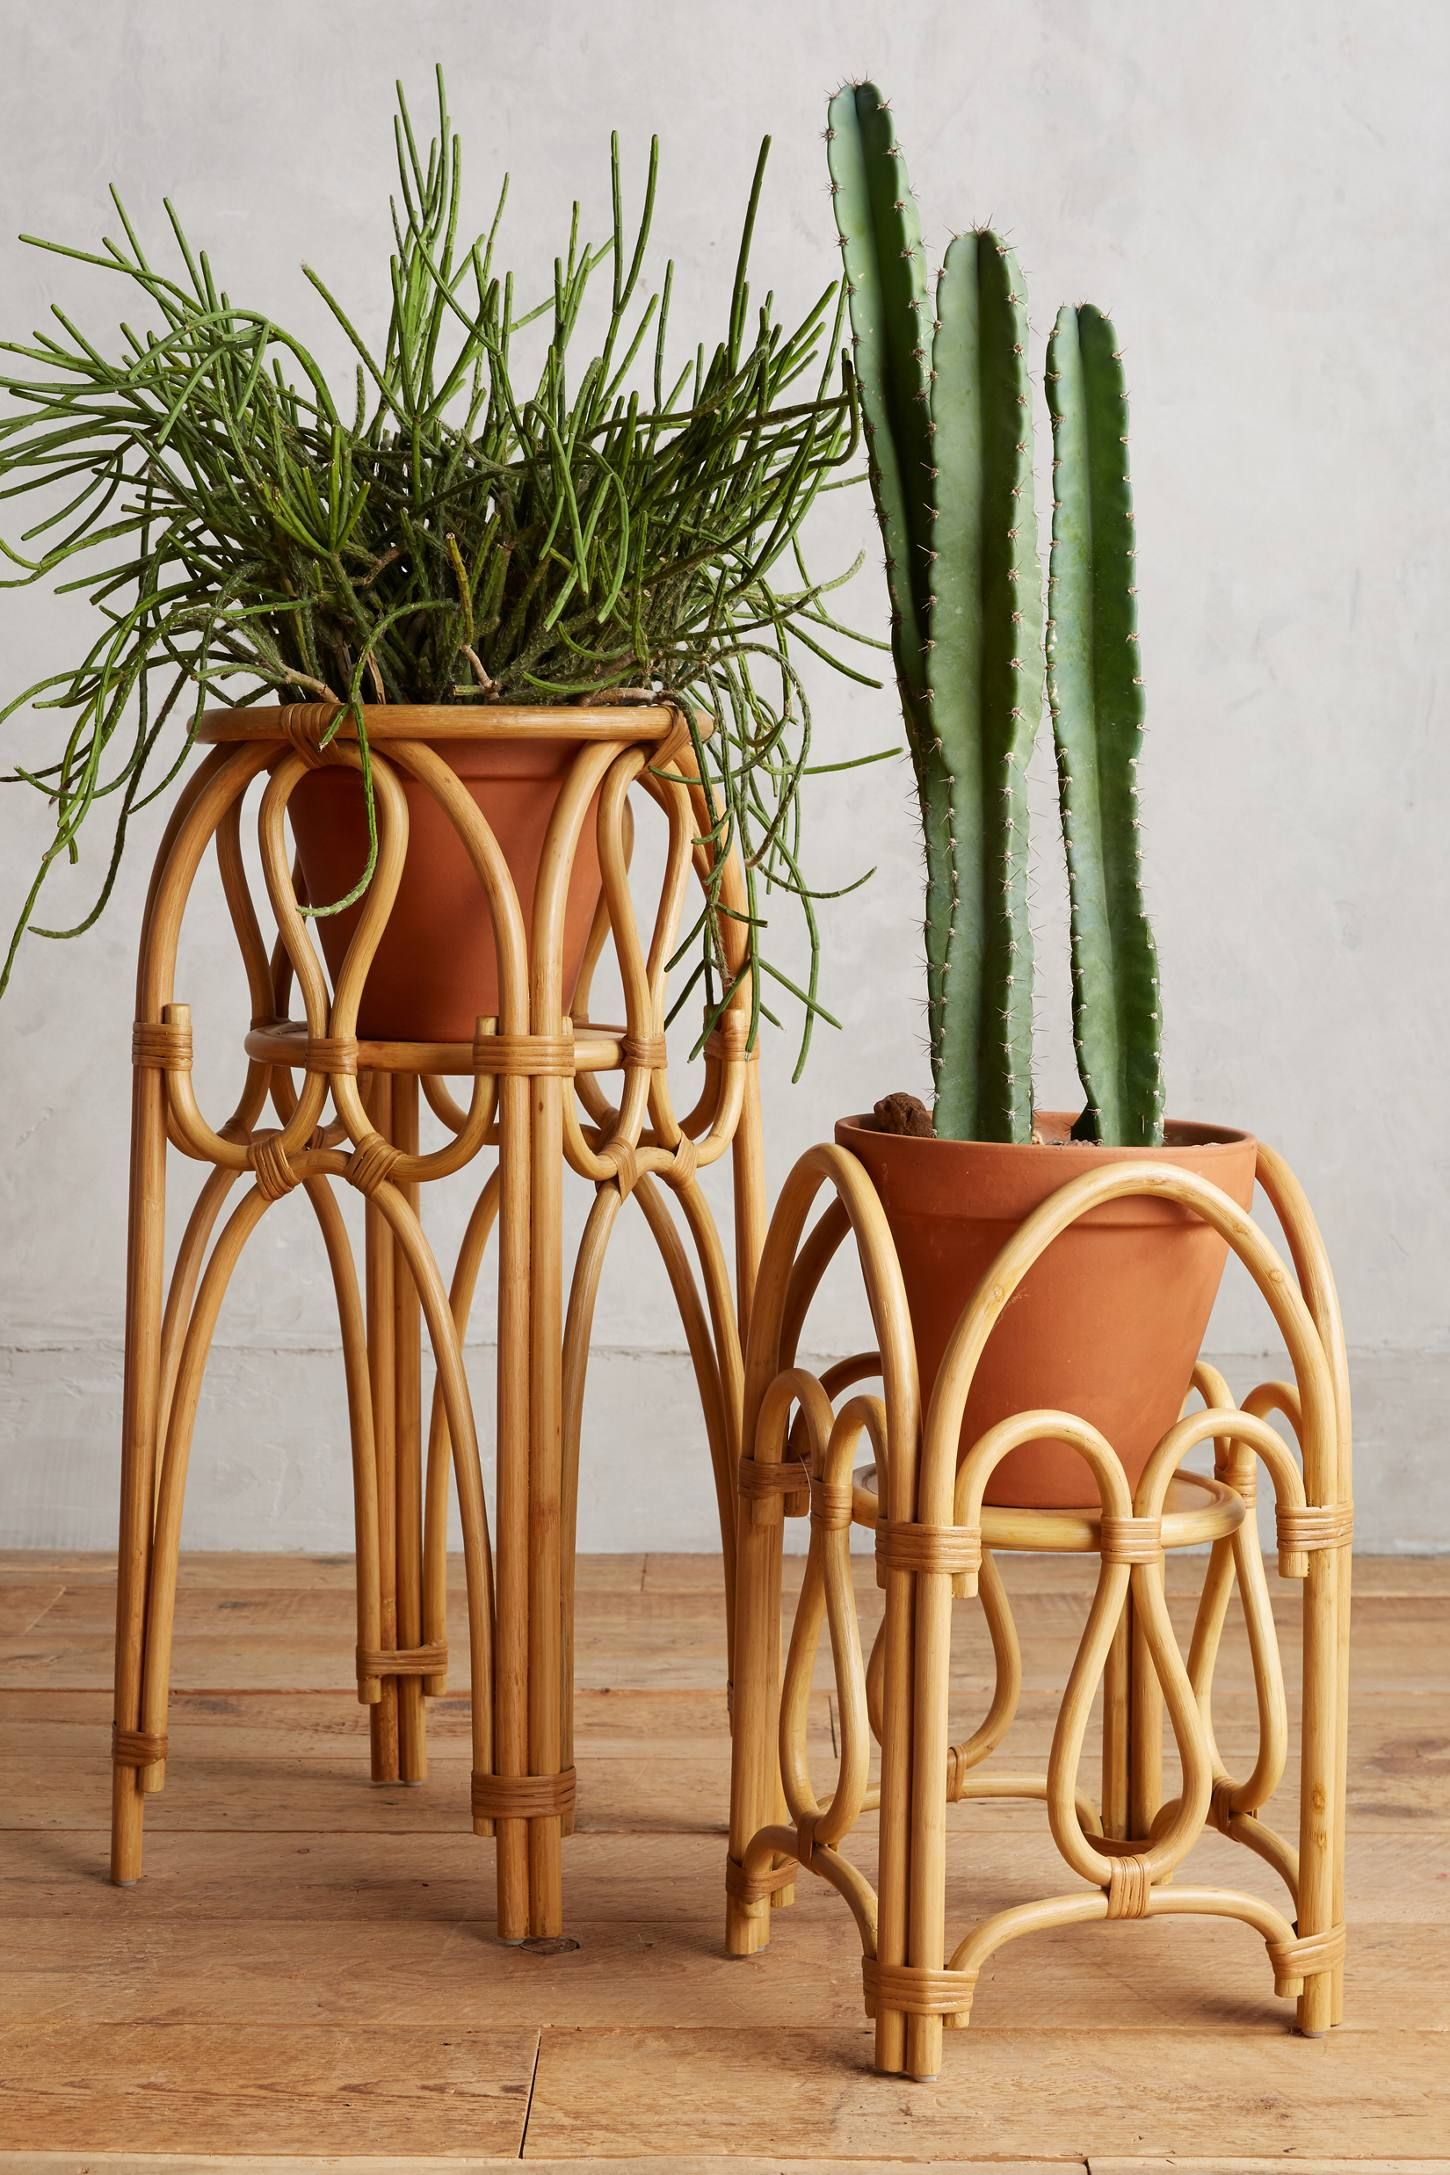 Charmant Shop The Rattan Plant Stand And More Anthropologie At Anthropologie Today.  Read Customer Reviews, Discover Product Details And More.